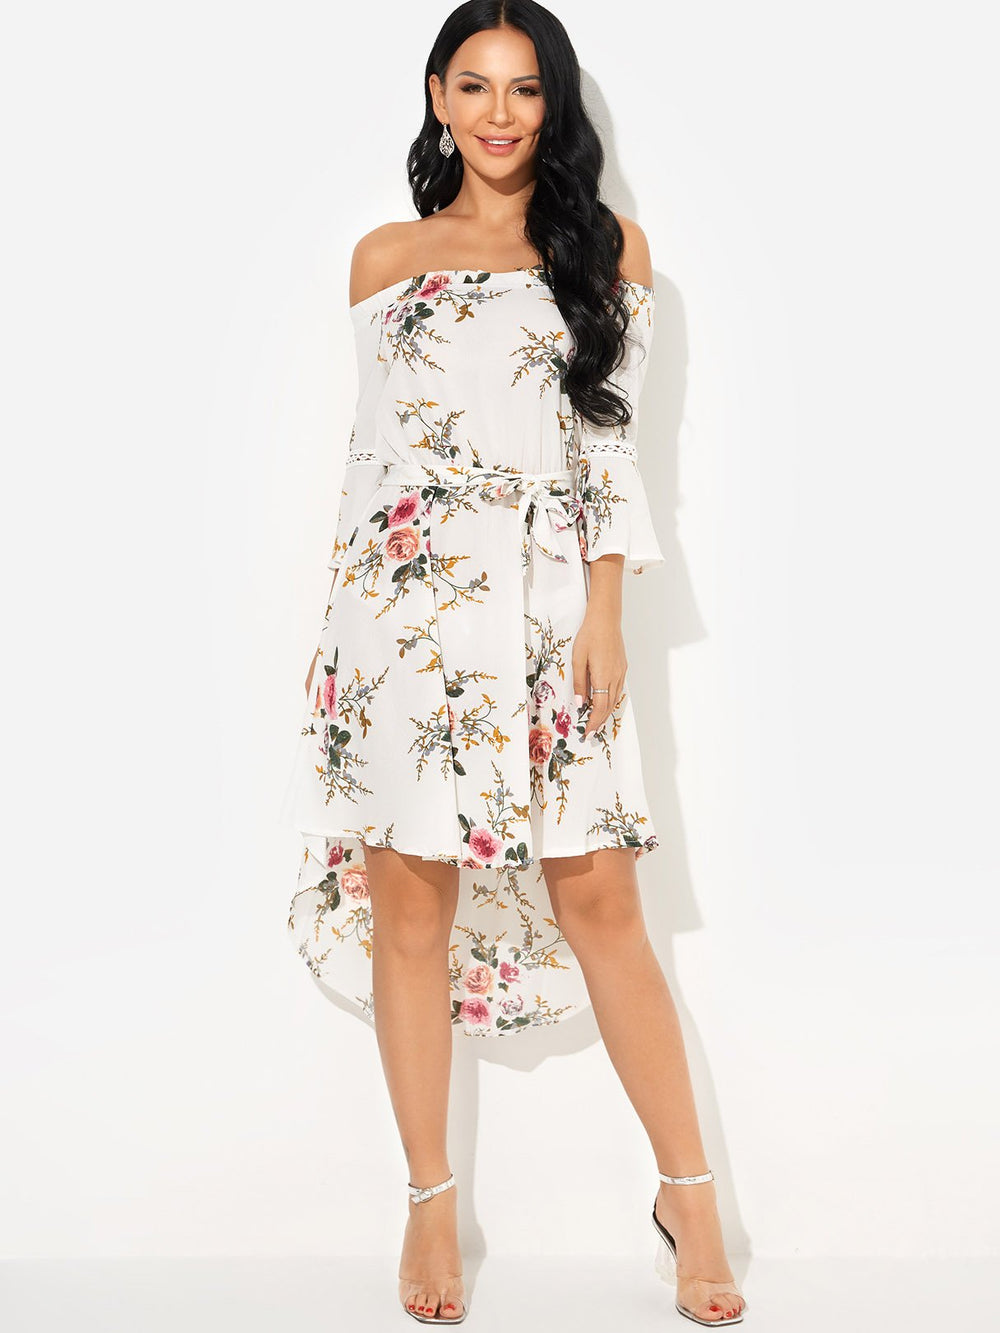 White Off The Shoulder 3/4 Sleeve Floral Print Hollow Self-Tie High-Low Hem Dresses